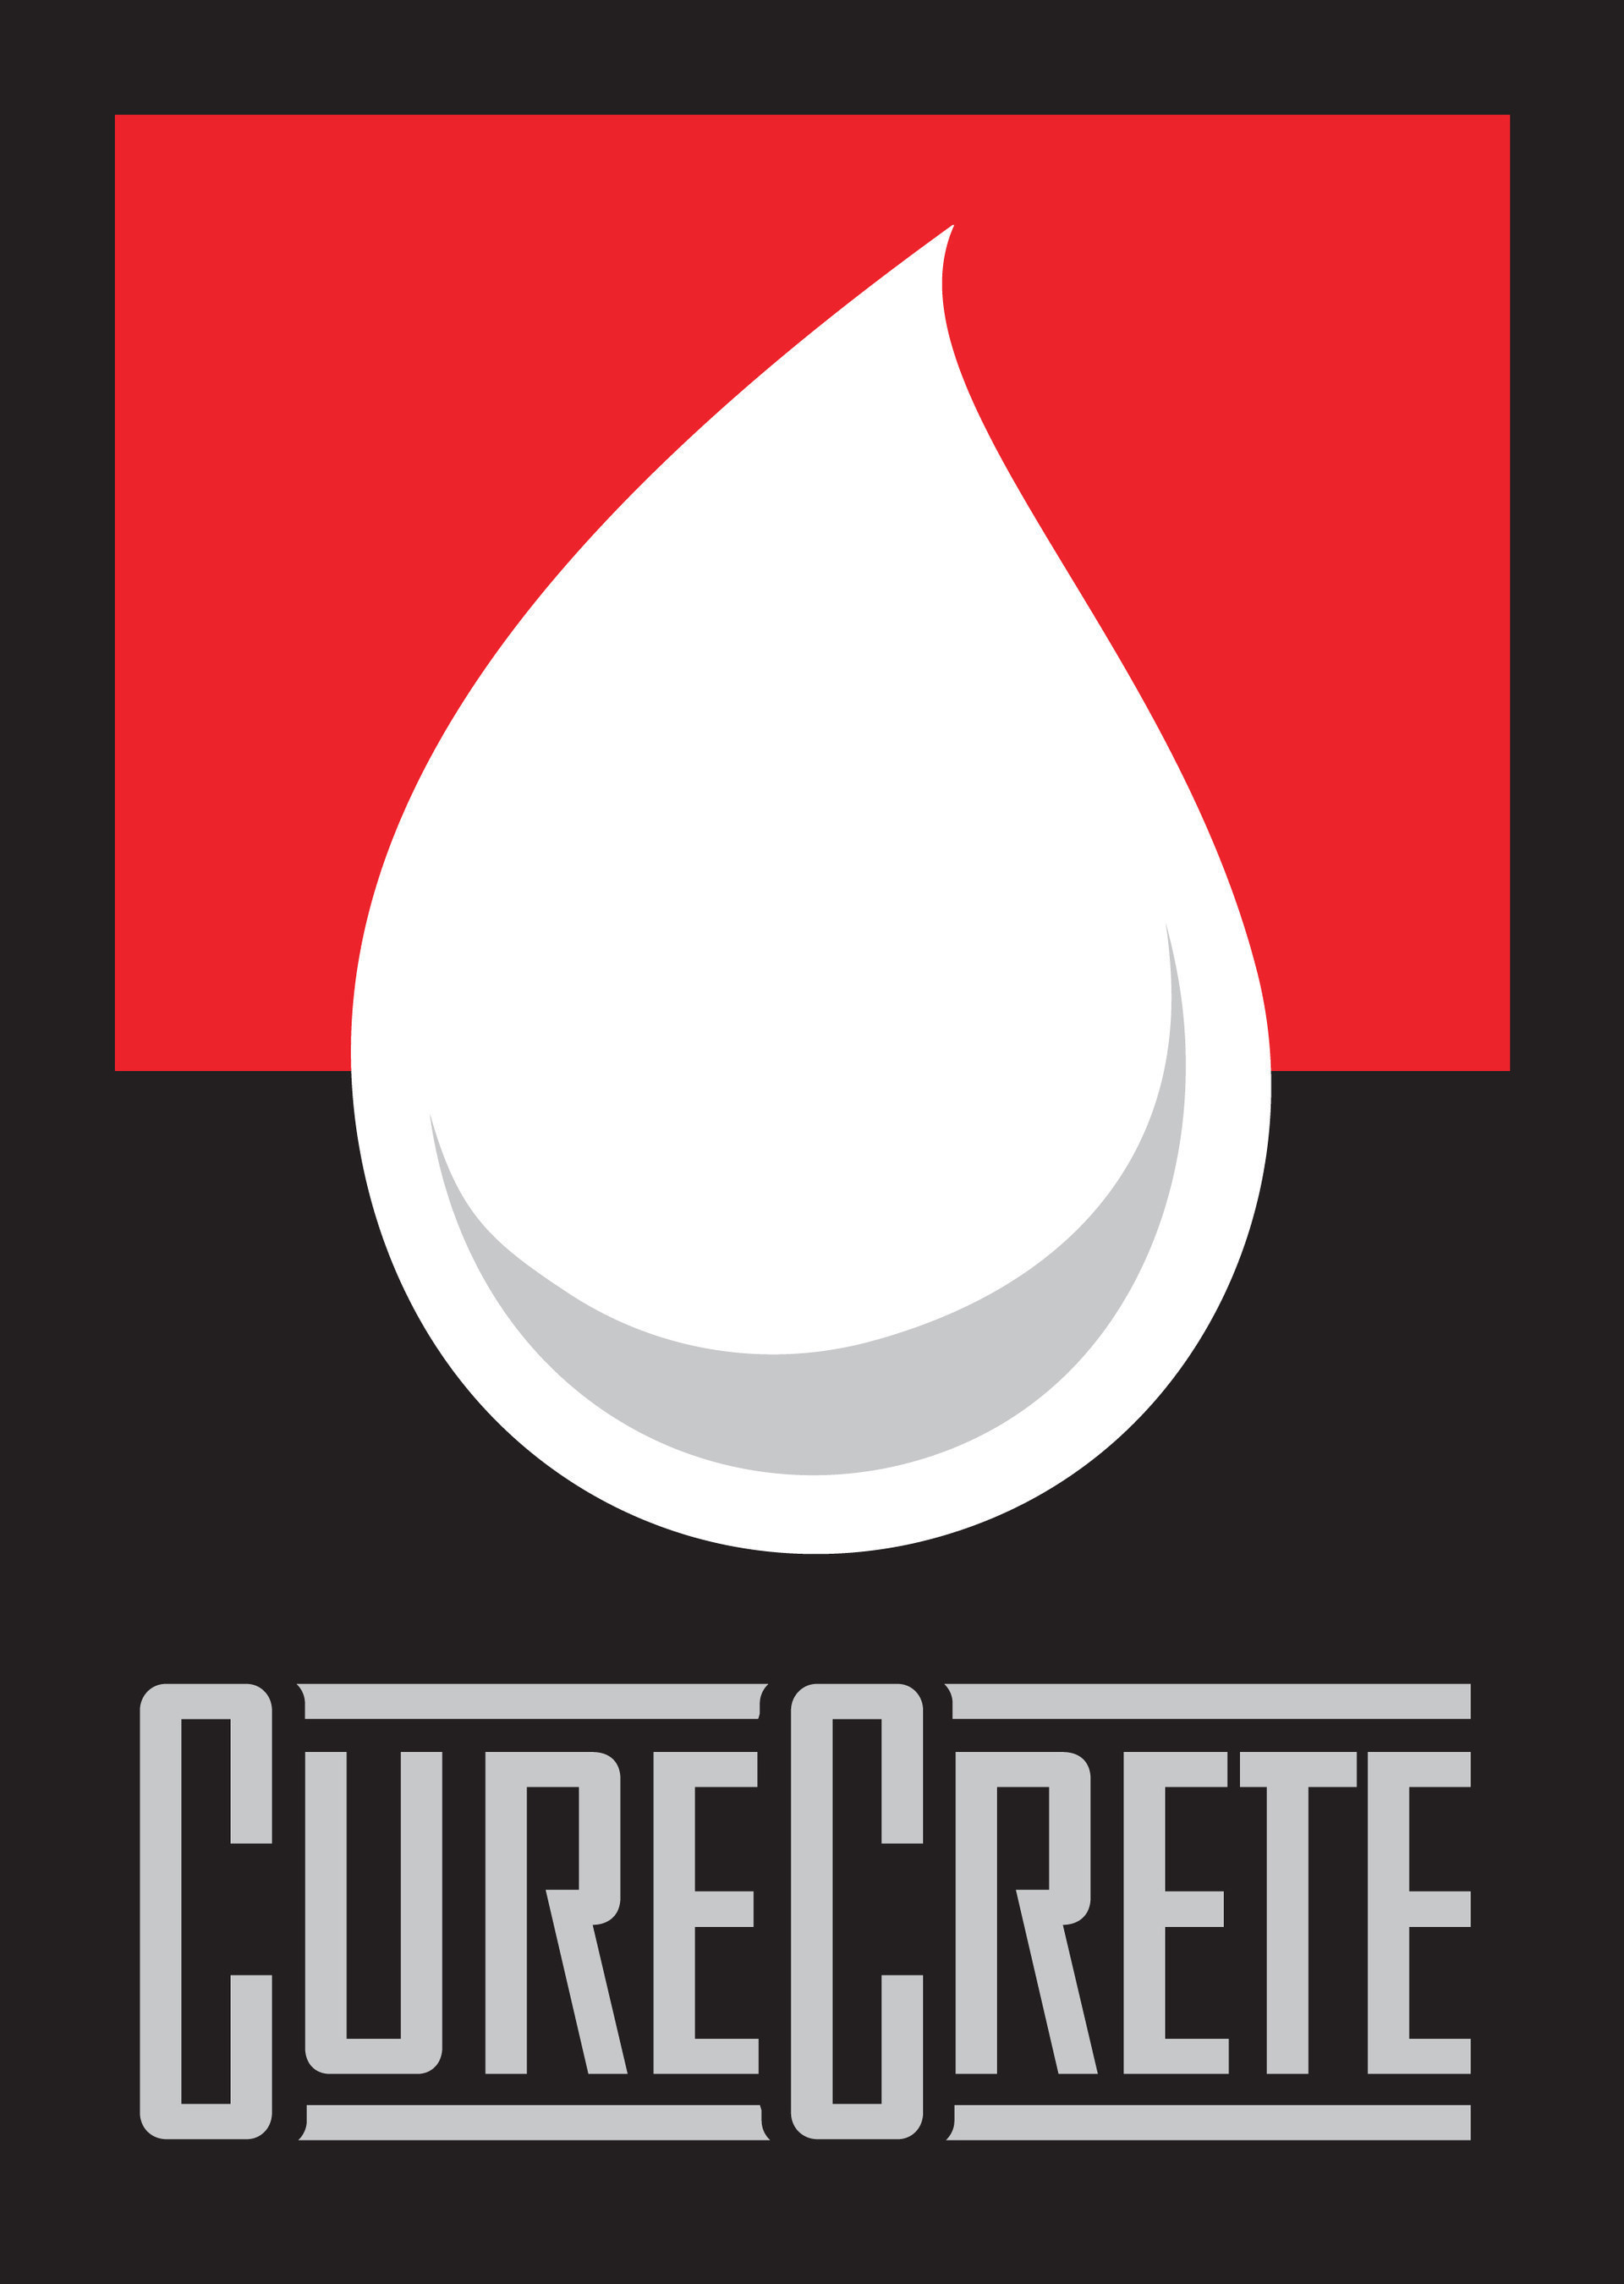 Curecrete Distribution Partners With Greence Inc To Offer No Cost